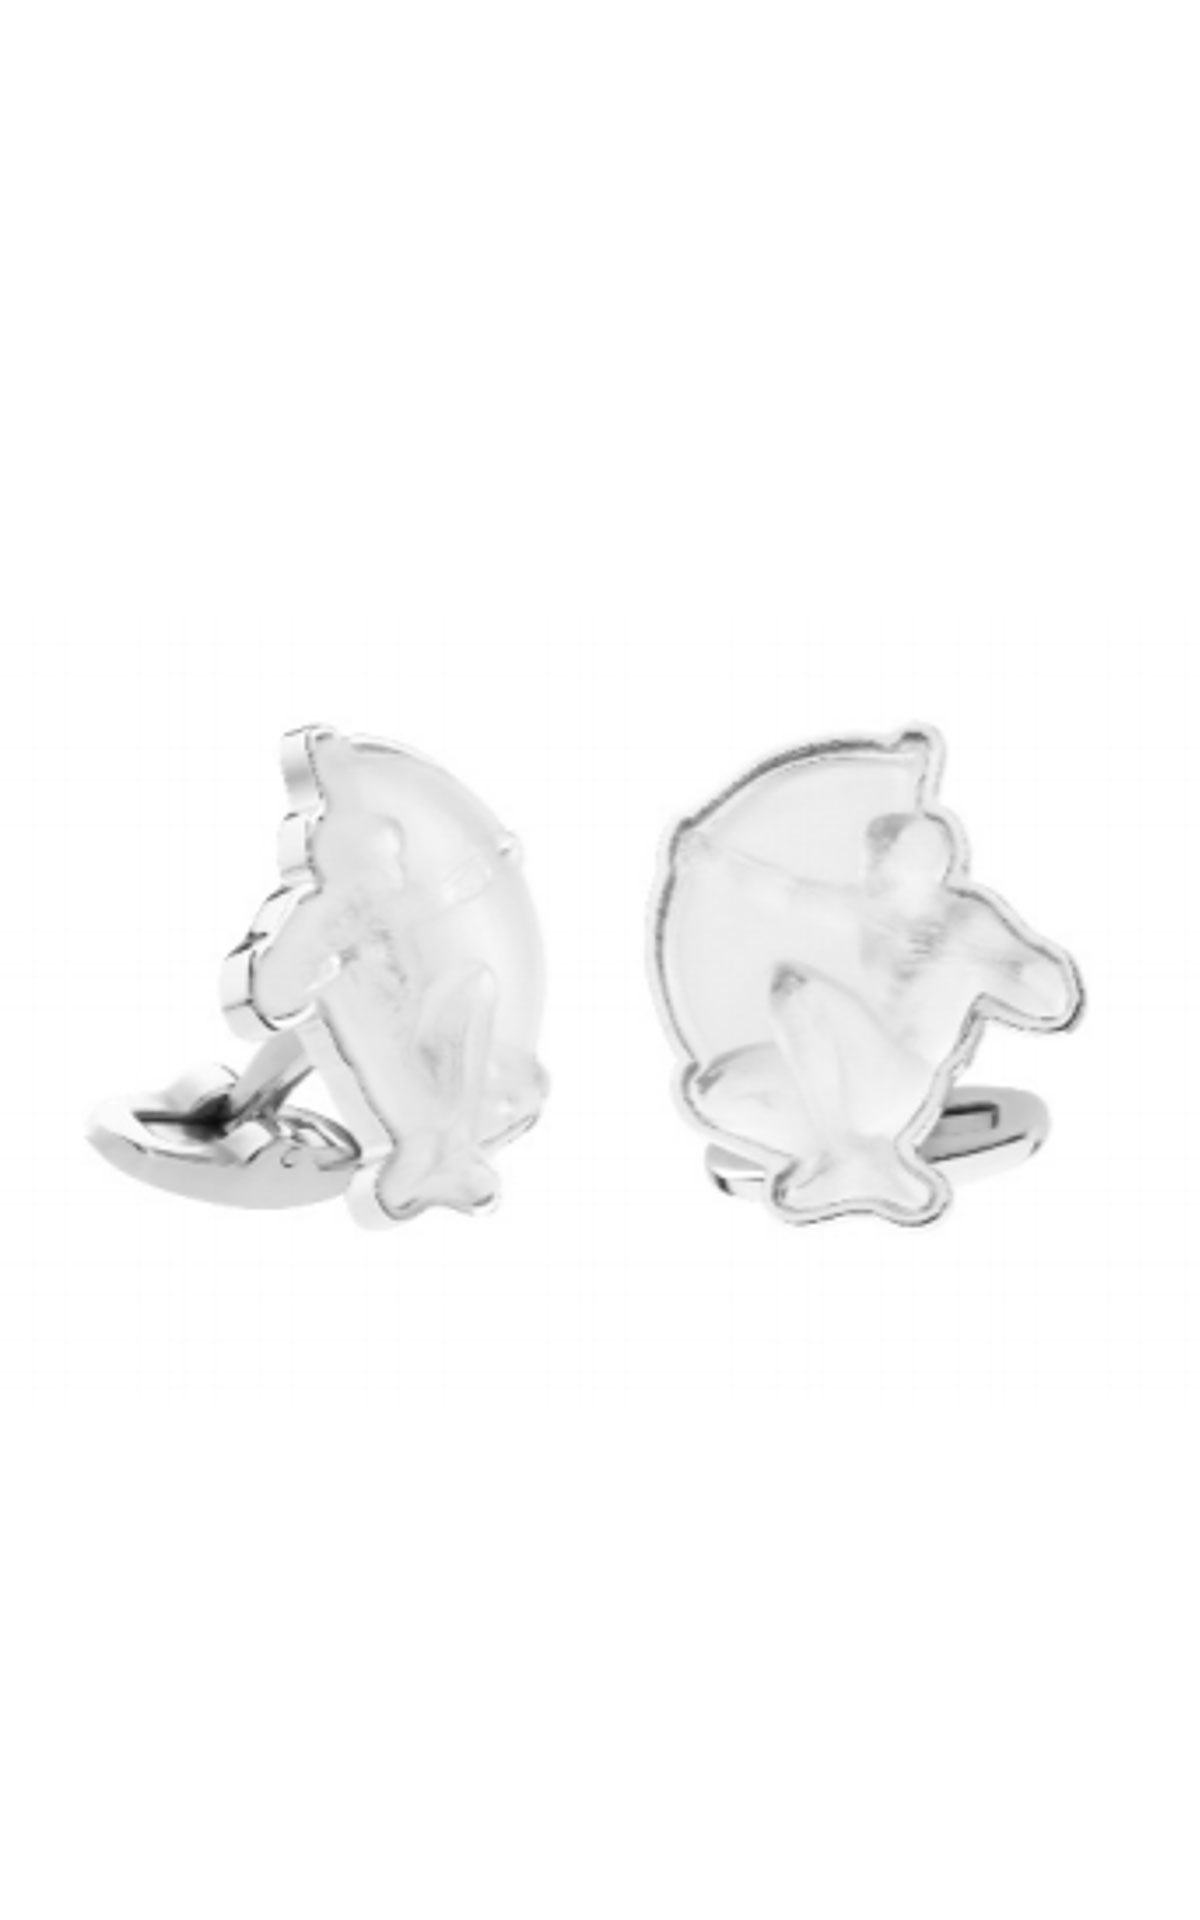 Lalique Mascottes archer cufflinks, clear crystal on silver from Bicester Village